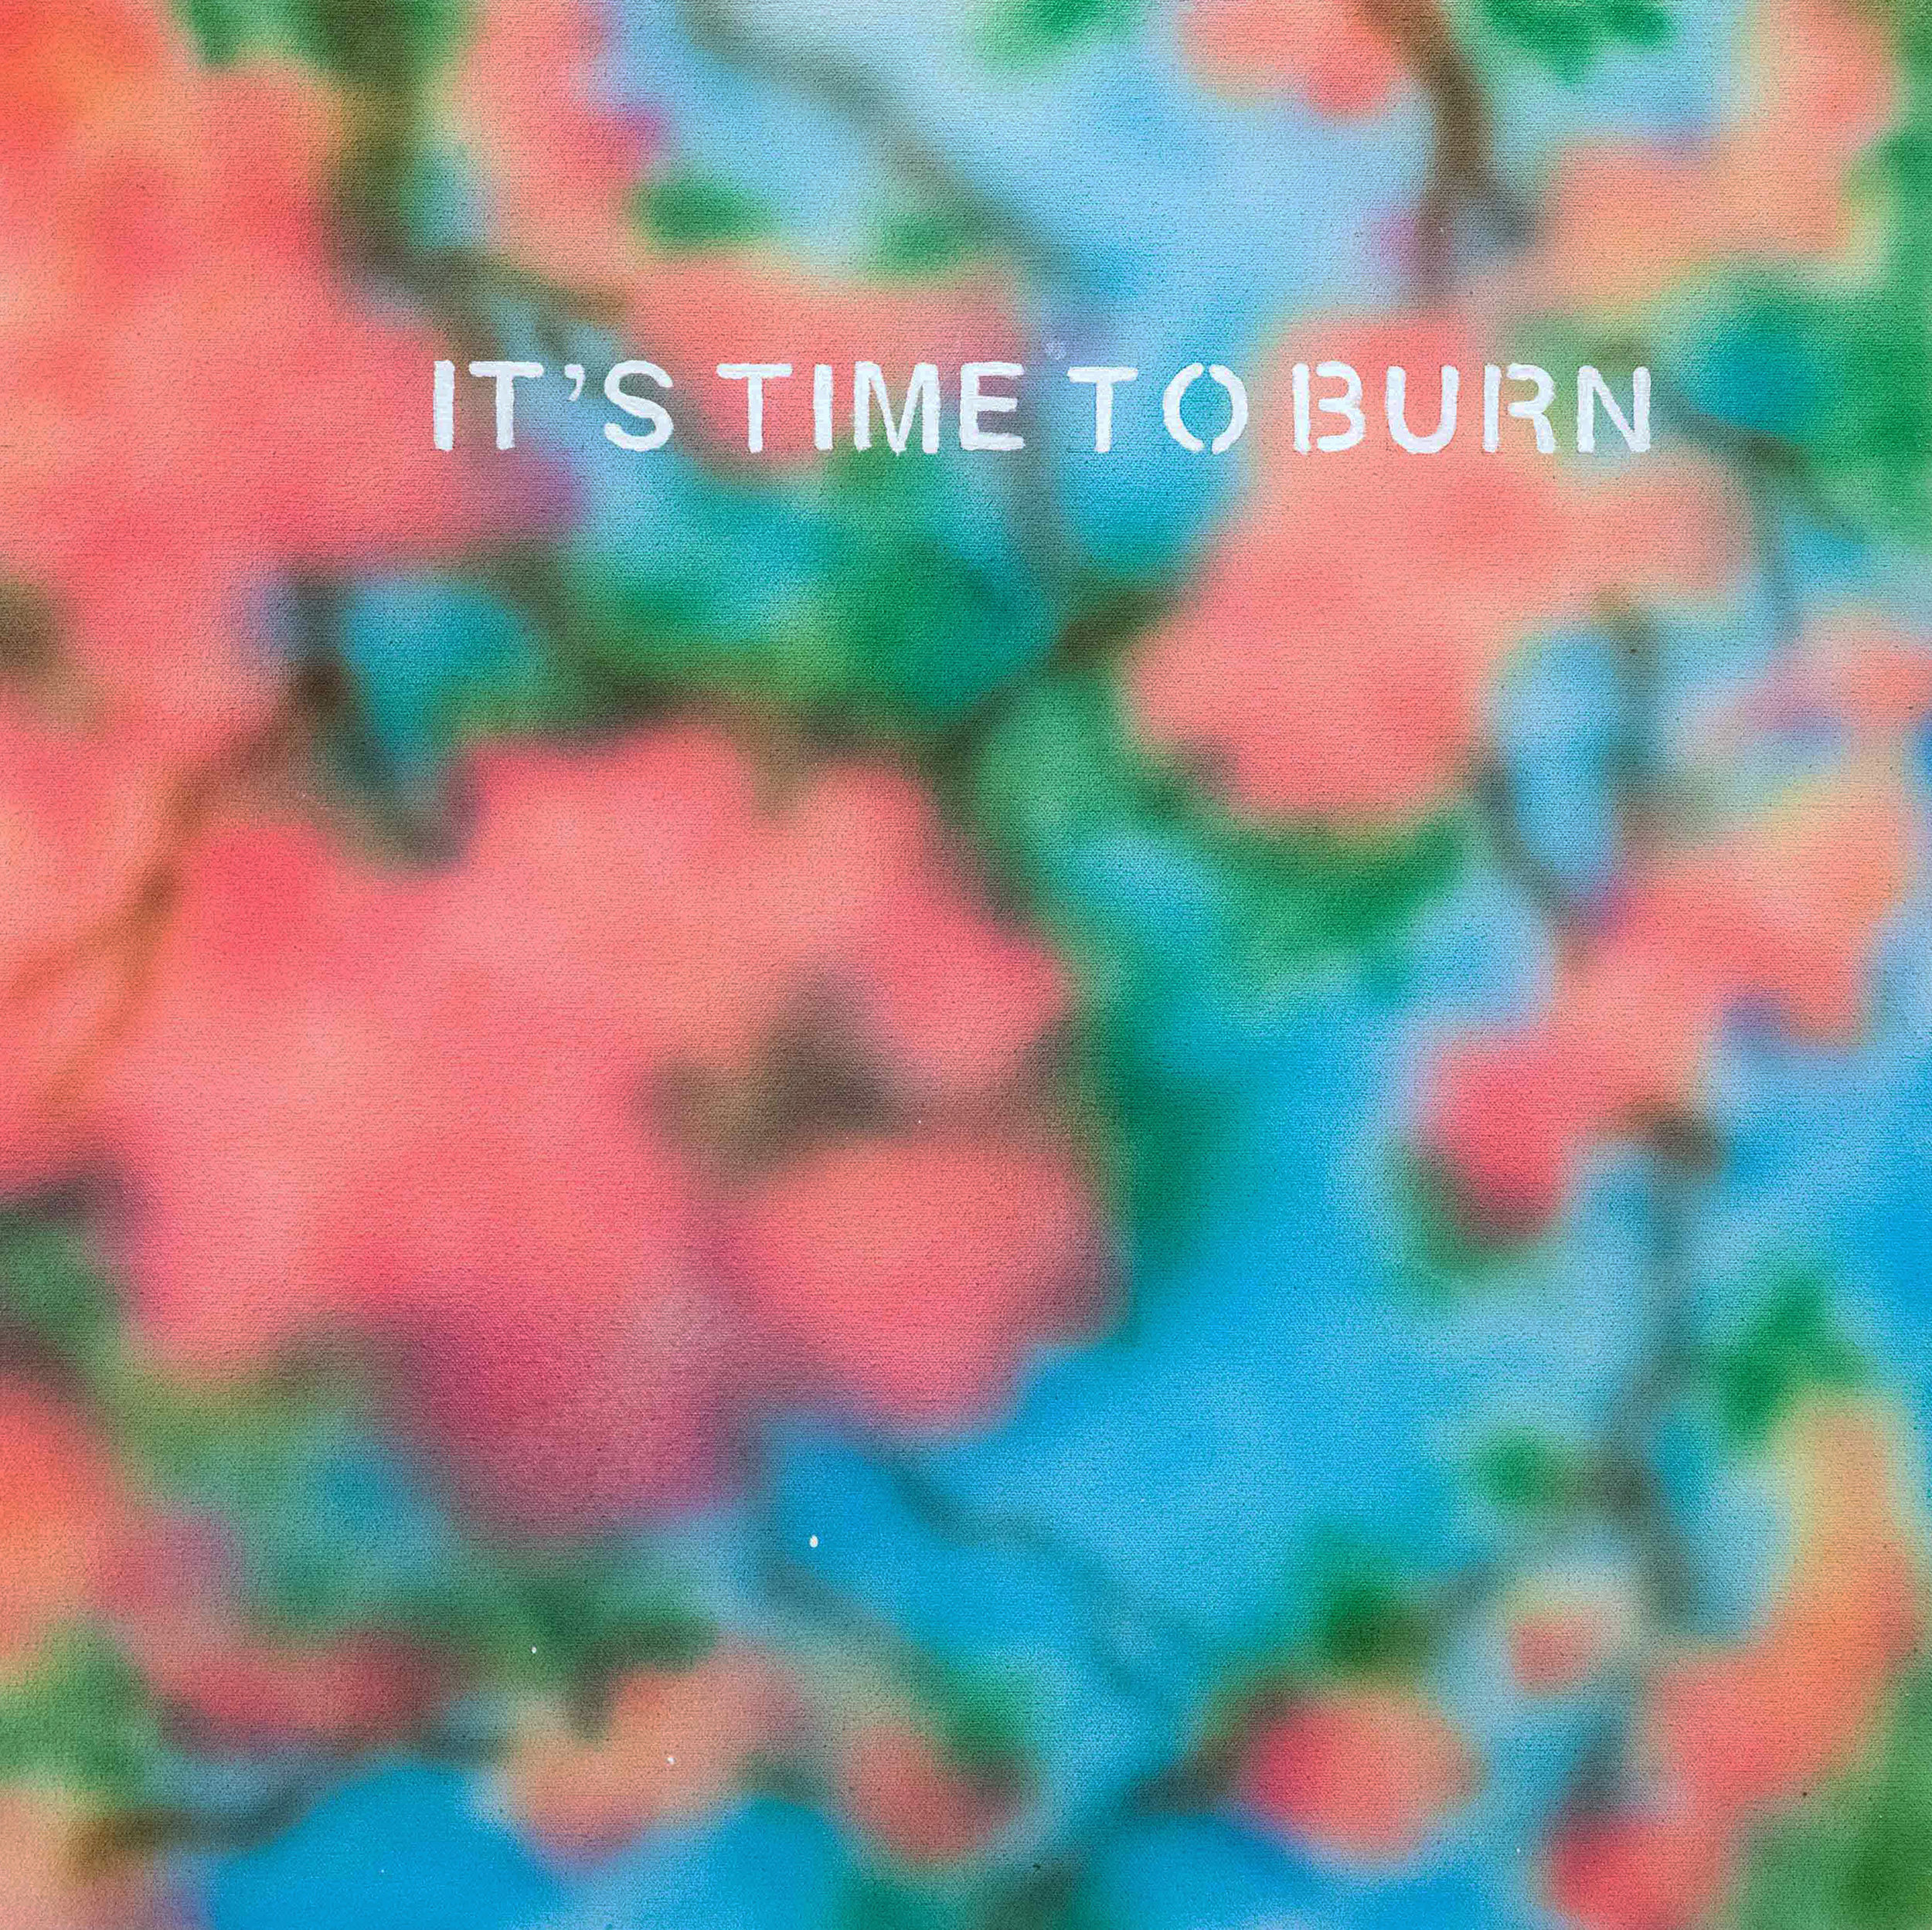 Siyuan Tan,  It's Time to Burn,  2019. Spray paint and acrylic on canvas, 24 x 24 inch ©Siyuan Tan, courtesy Fou Gallery